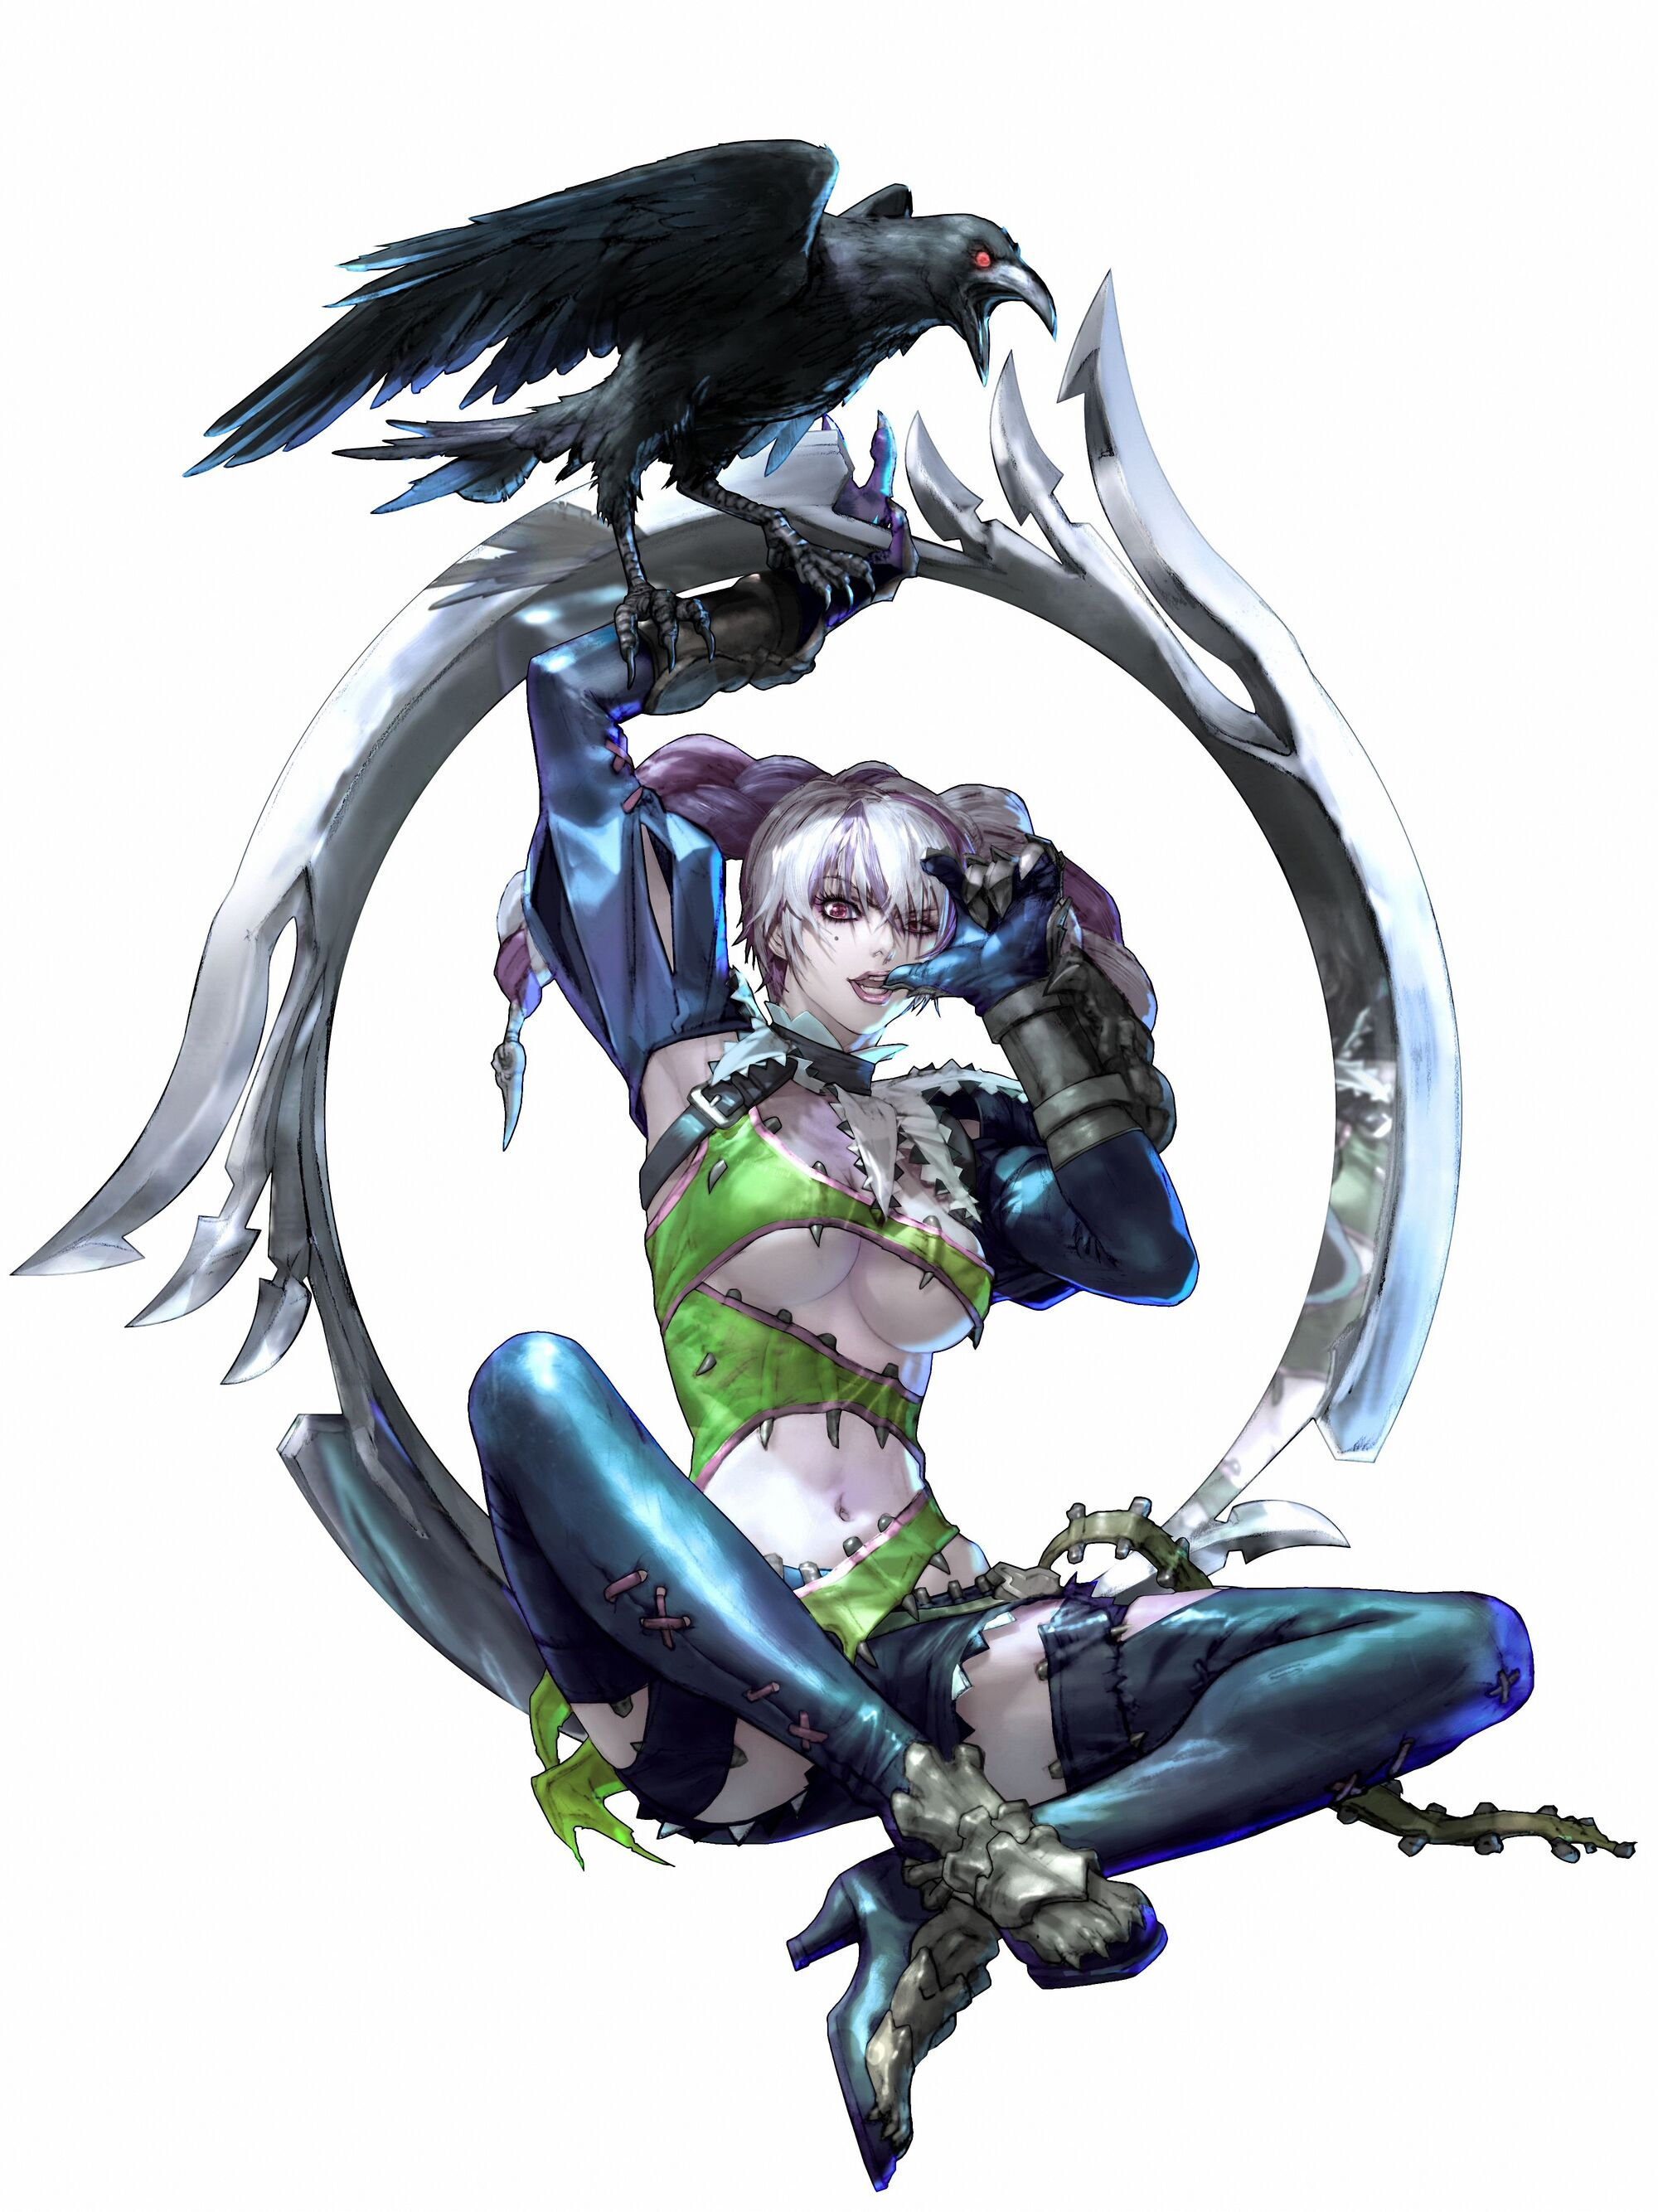 Tira/Original Timeline | Soulcalibur Wiki | FANDOM powered